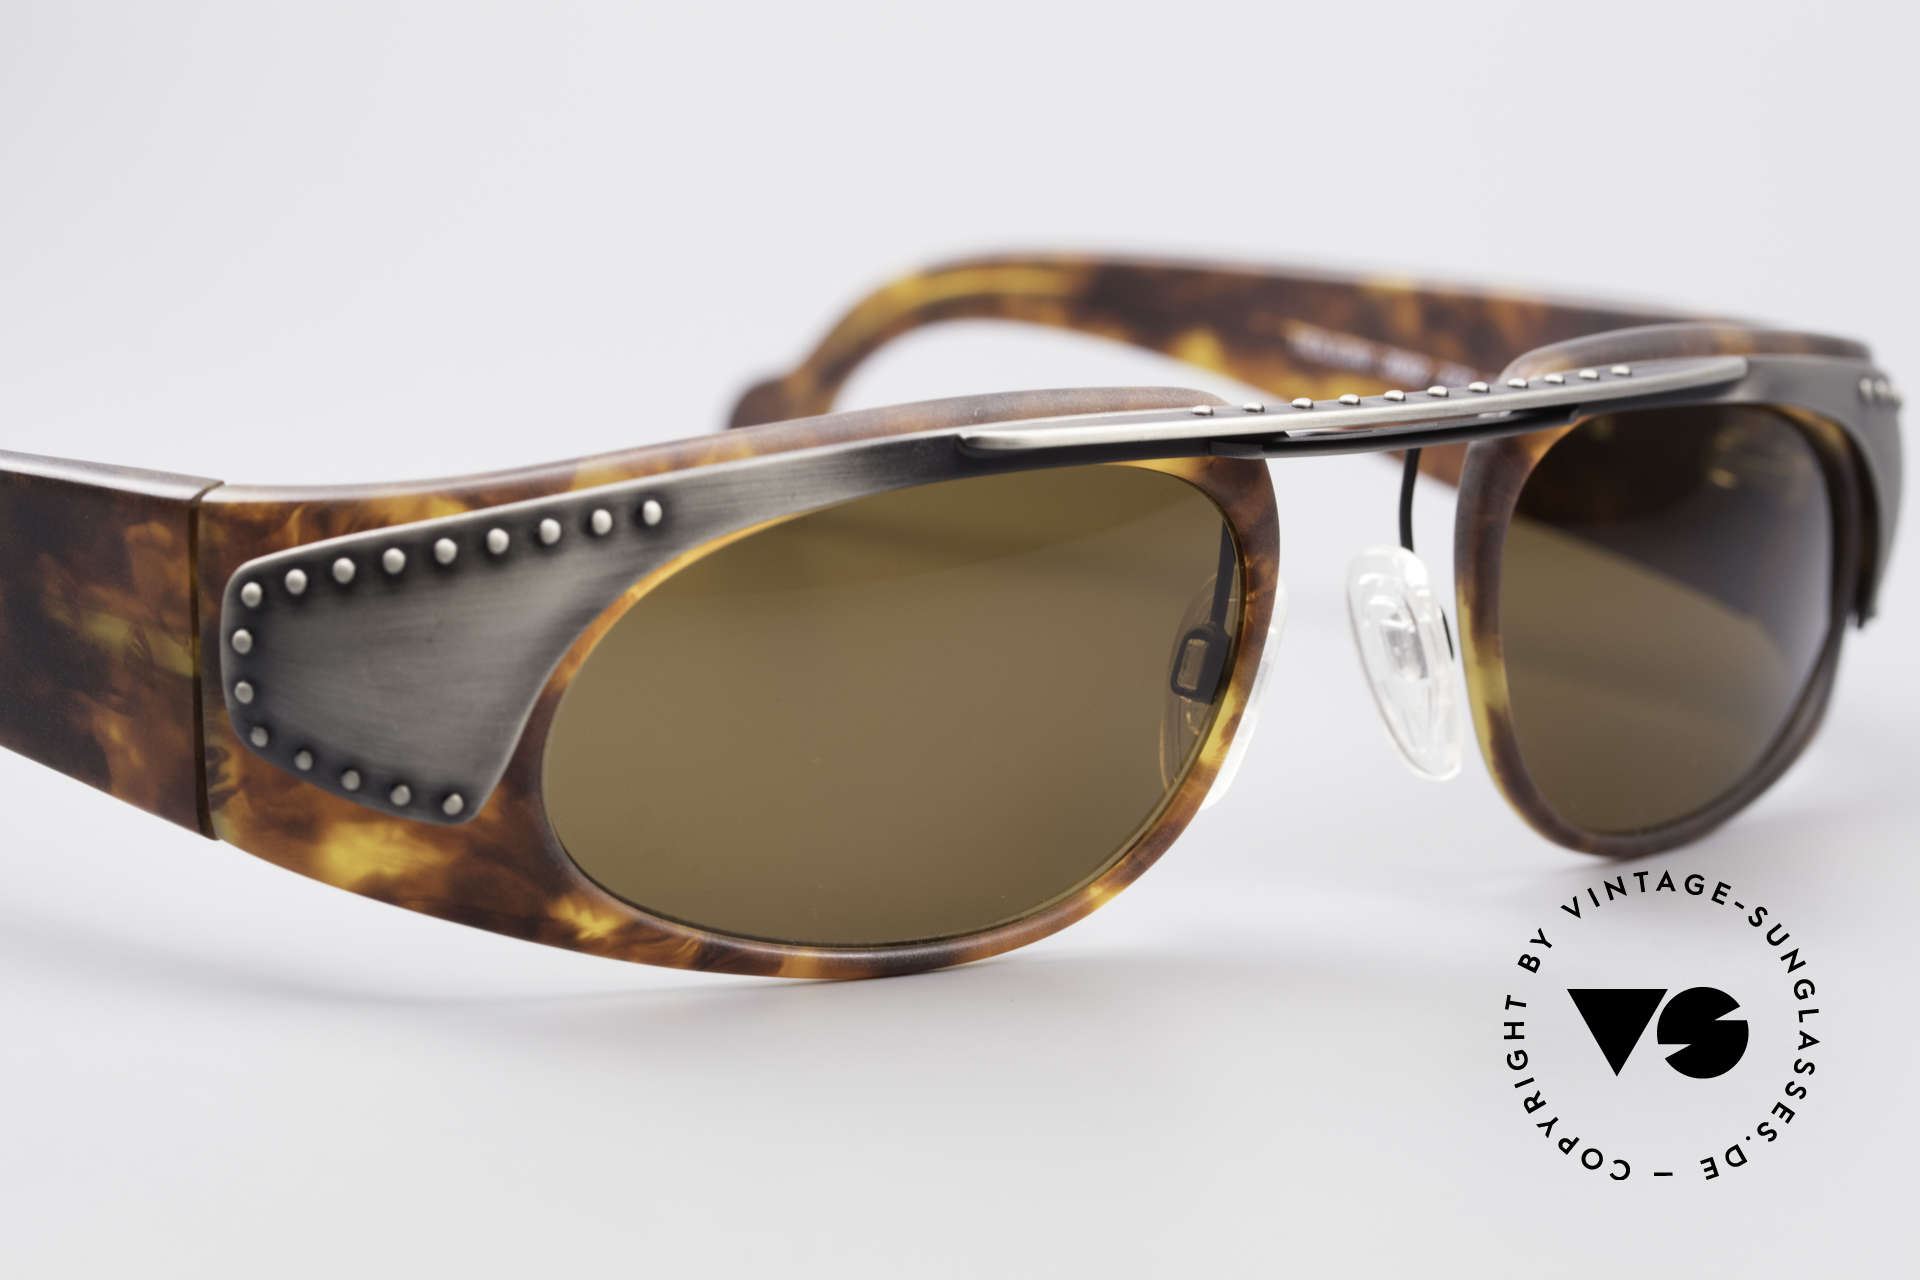 Neostyle Holiday 2002 Vintage Steampunk Sunglasses, unworn (like all our old 90's designer sunglasses), Made for Men